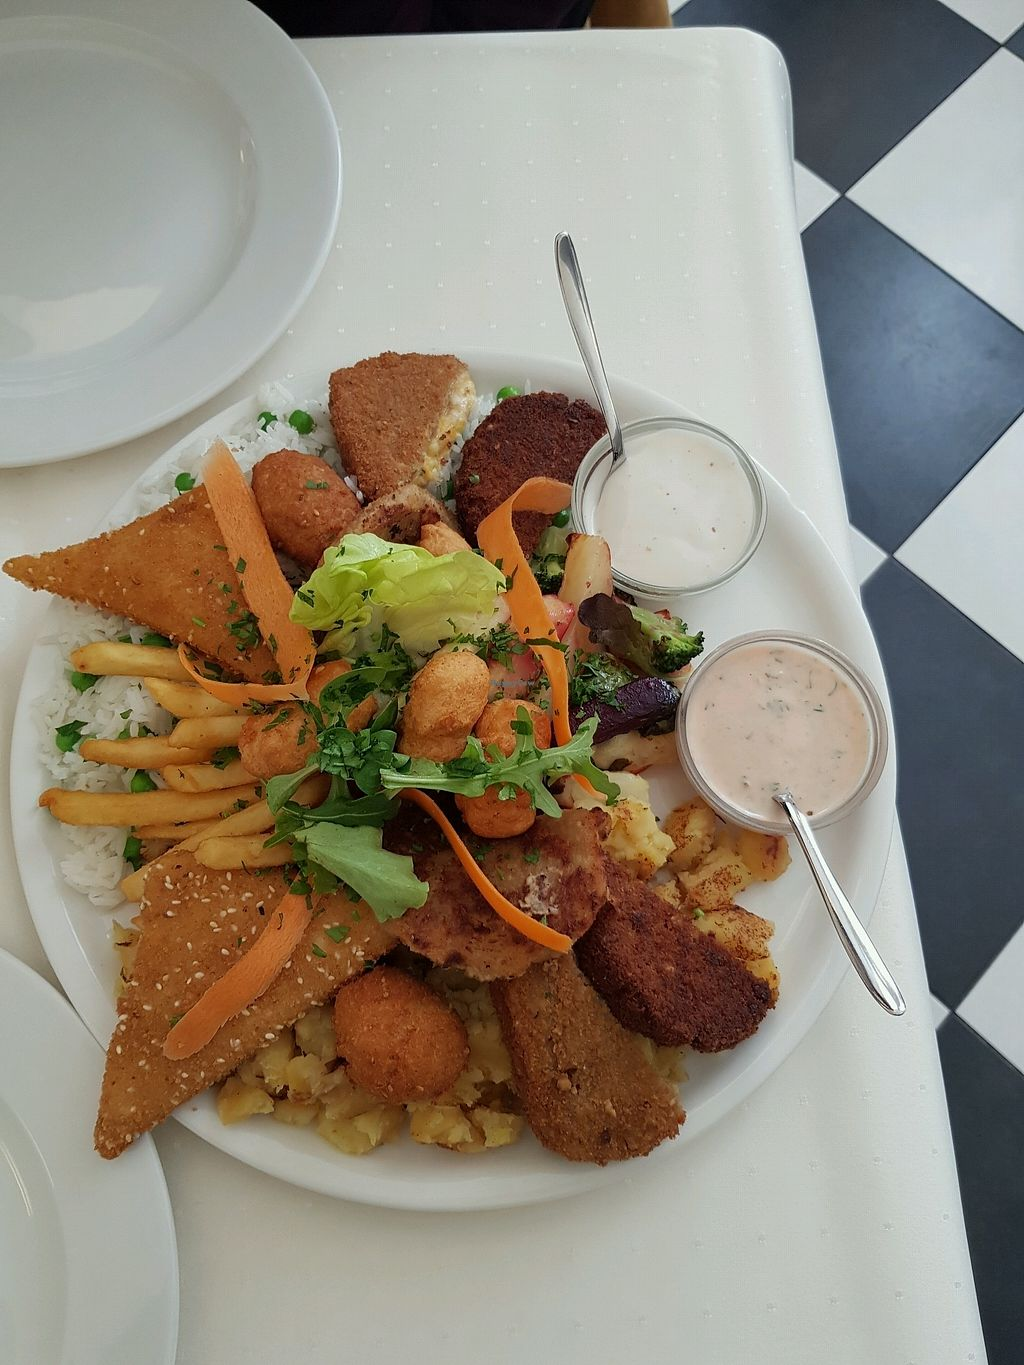 """Photo of Napfenyes Restaurant and Pastry Shop  by <a href=""""/members/profile/HeatherDonaldson"""">HeatherDonaldson</a> <br/>Vegan platter for 2 <br/> February 17, 2018  - <a href='/contact/abuse/image/18107/360275'>Report</a>"""